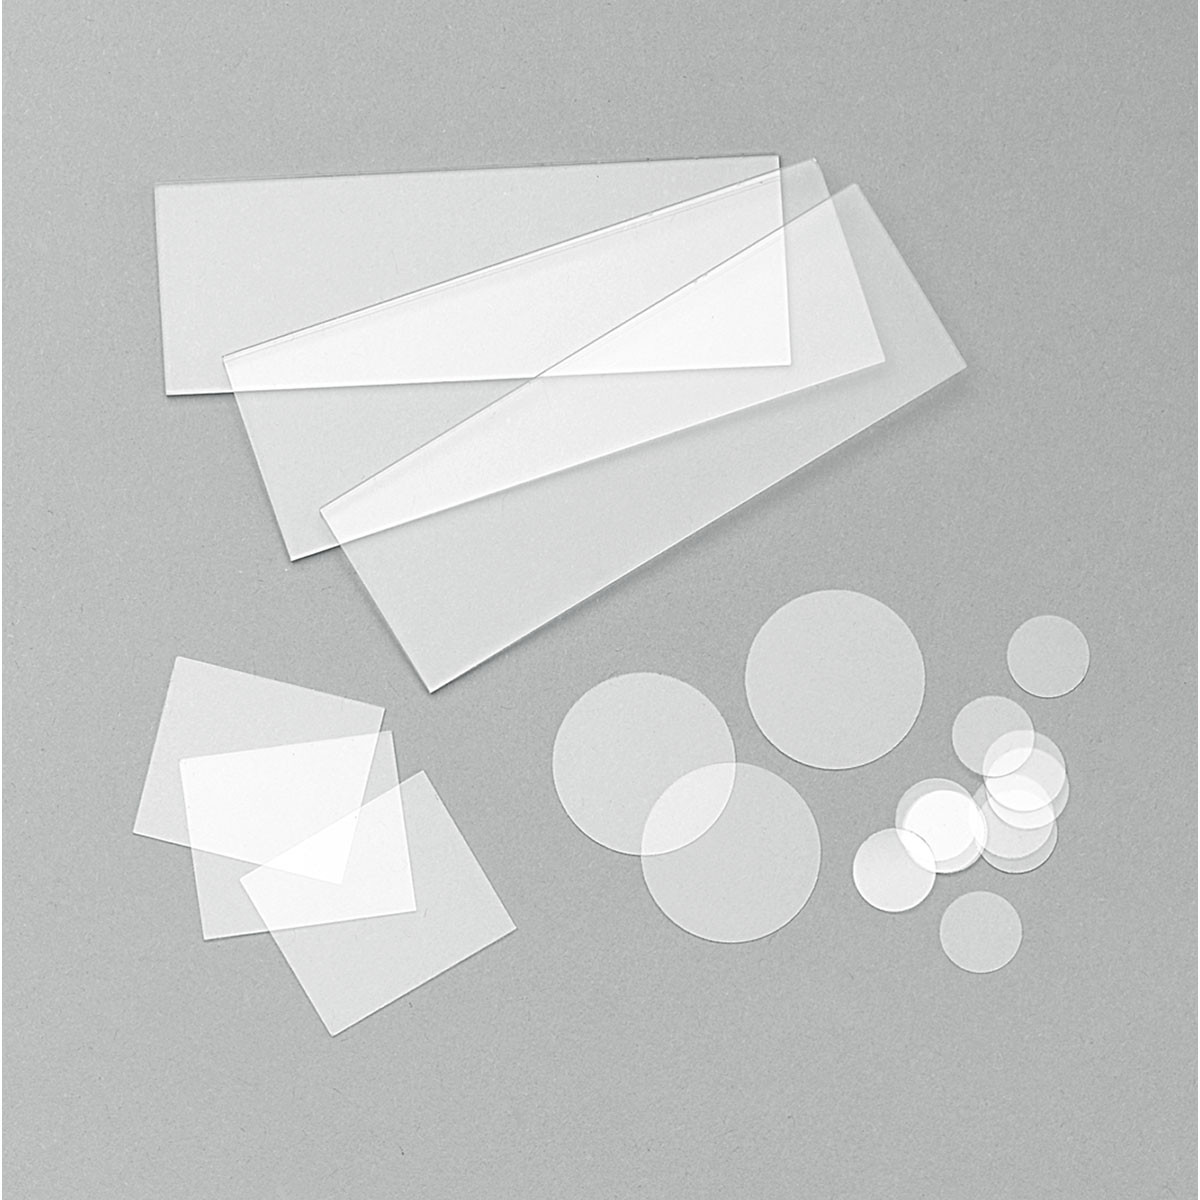 Cover Slips No. 1 22x26mm (100/ pack)